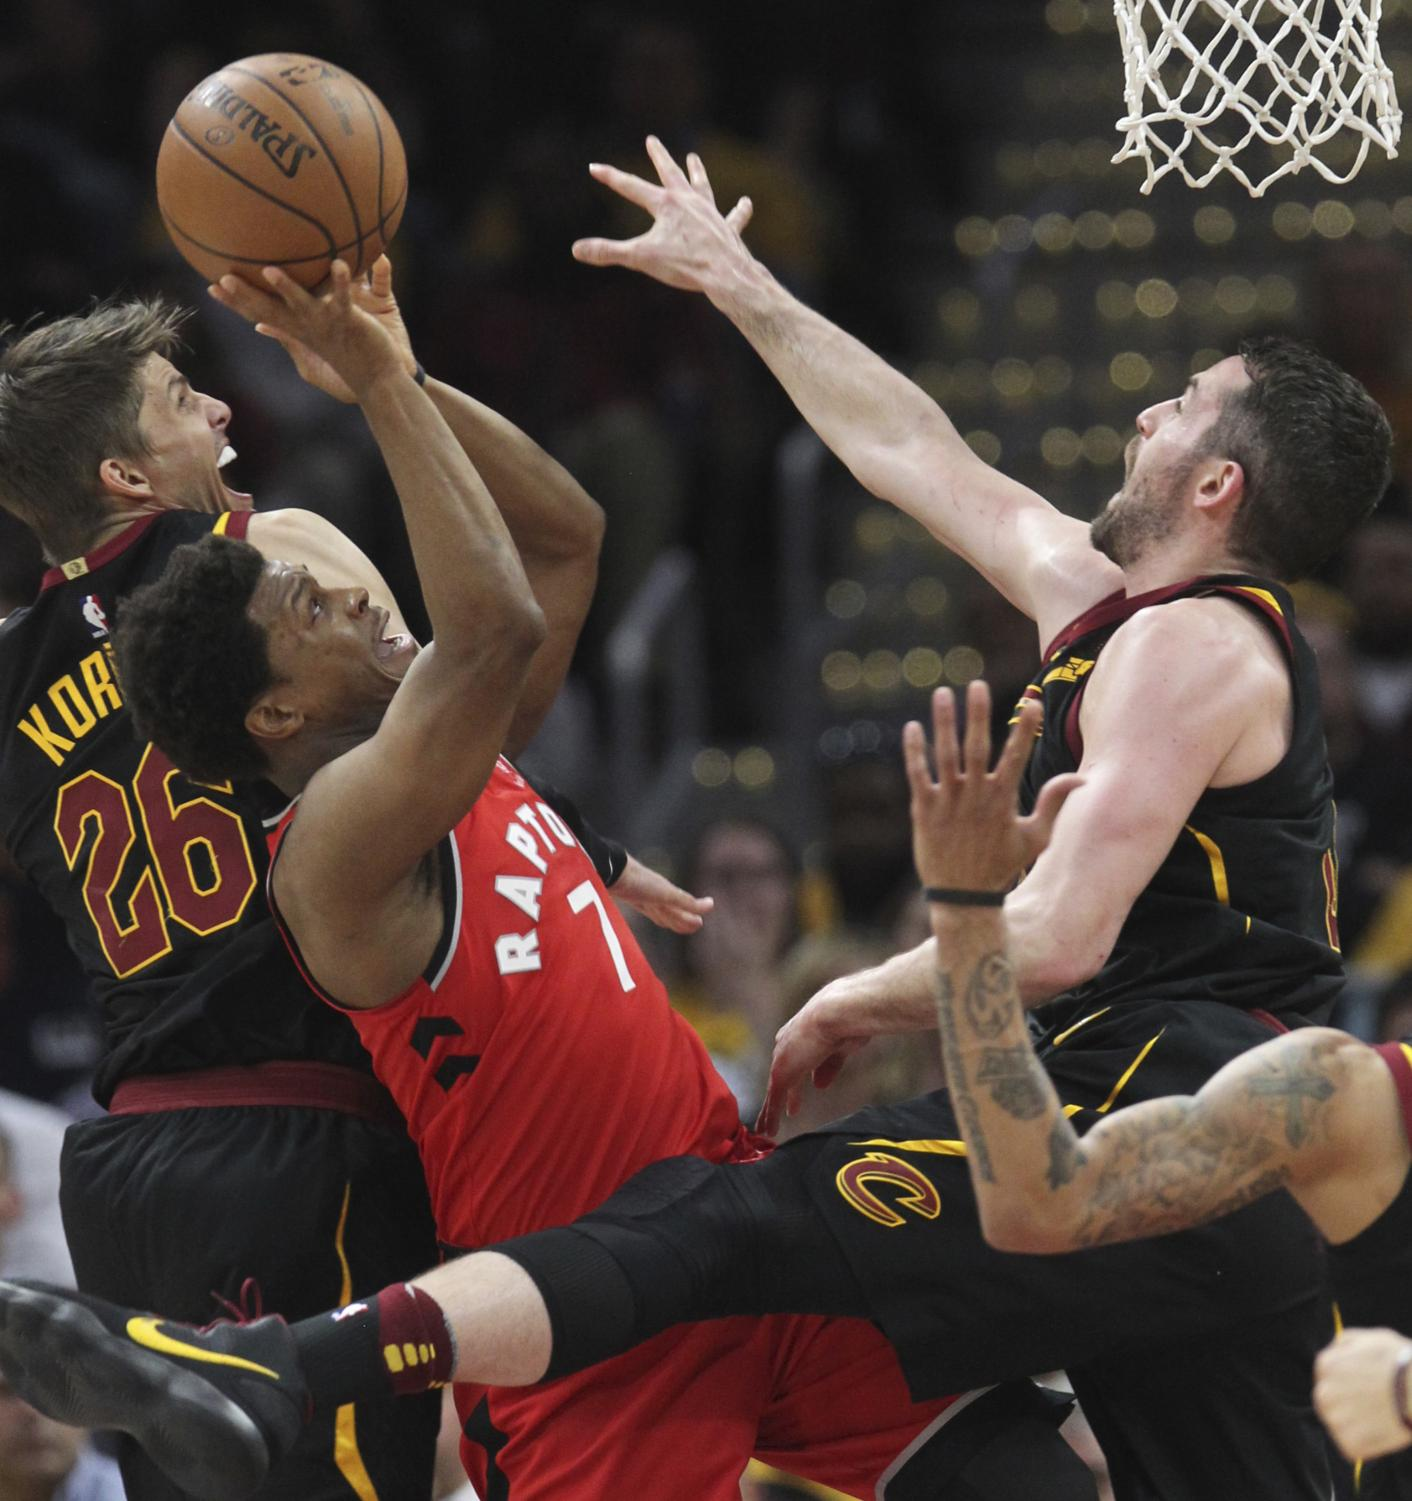 Toronto Raptors' Kyle Lowry is smothered inside during the first quarter by Cleveland Cavaliers' Kyle Korver (left) and Kevin Love in Game 4 of a second-round playoff series on Monday, May 7, 2018 in Cleveland, Ohio. (Phil Masturzo/Akron Beacon Journal/TNS)